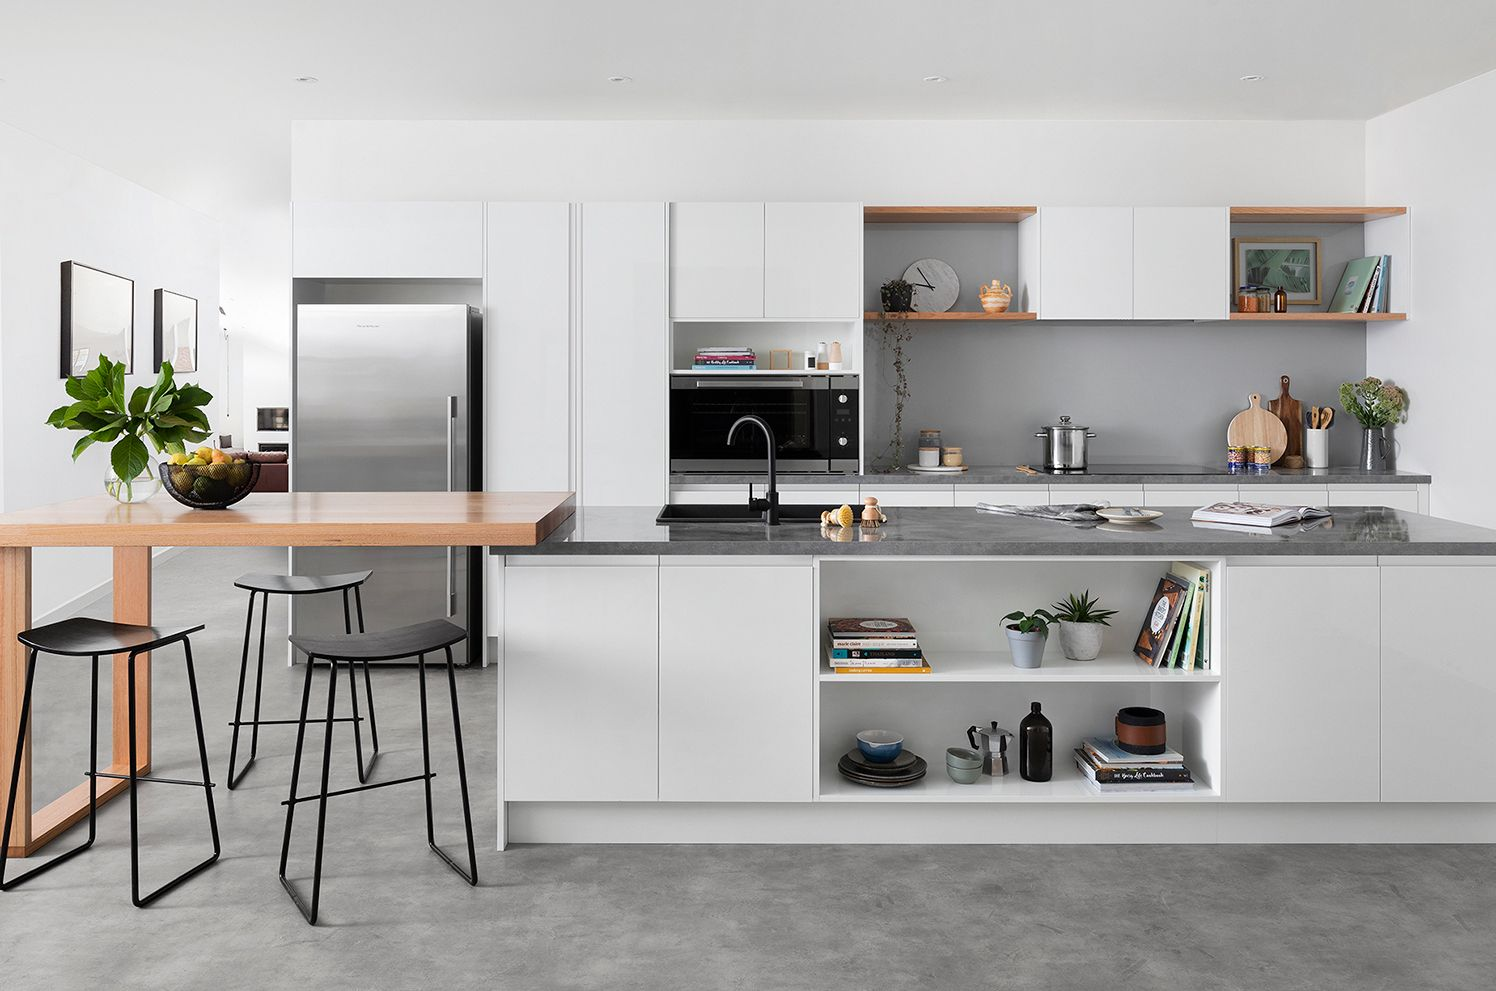 kaboodle in 2020 kitchen inspirations chic kitchen kitchen design on kaboodle kitchen enoki id=22147